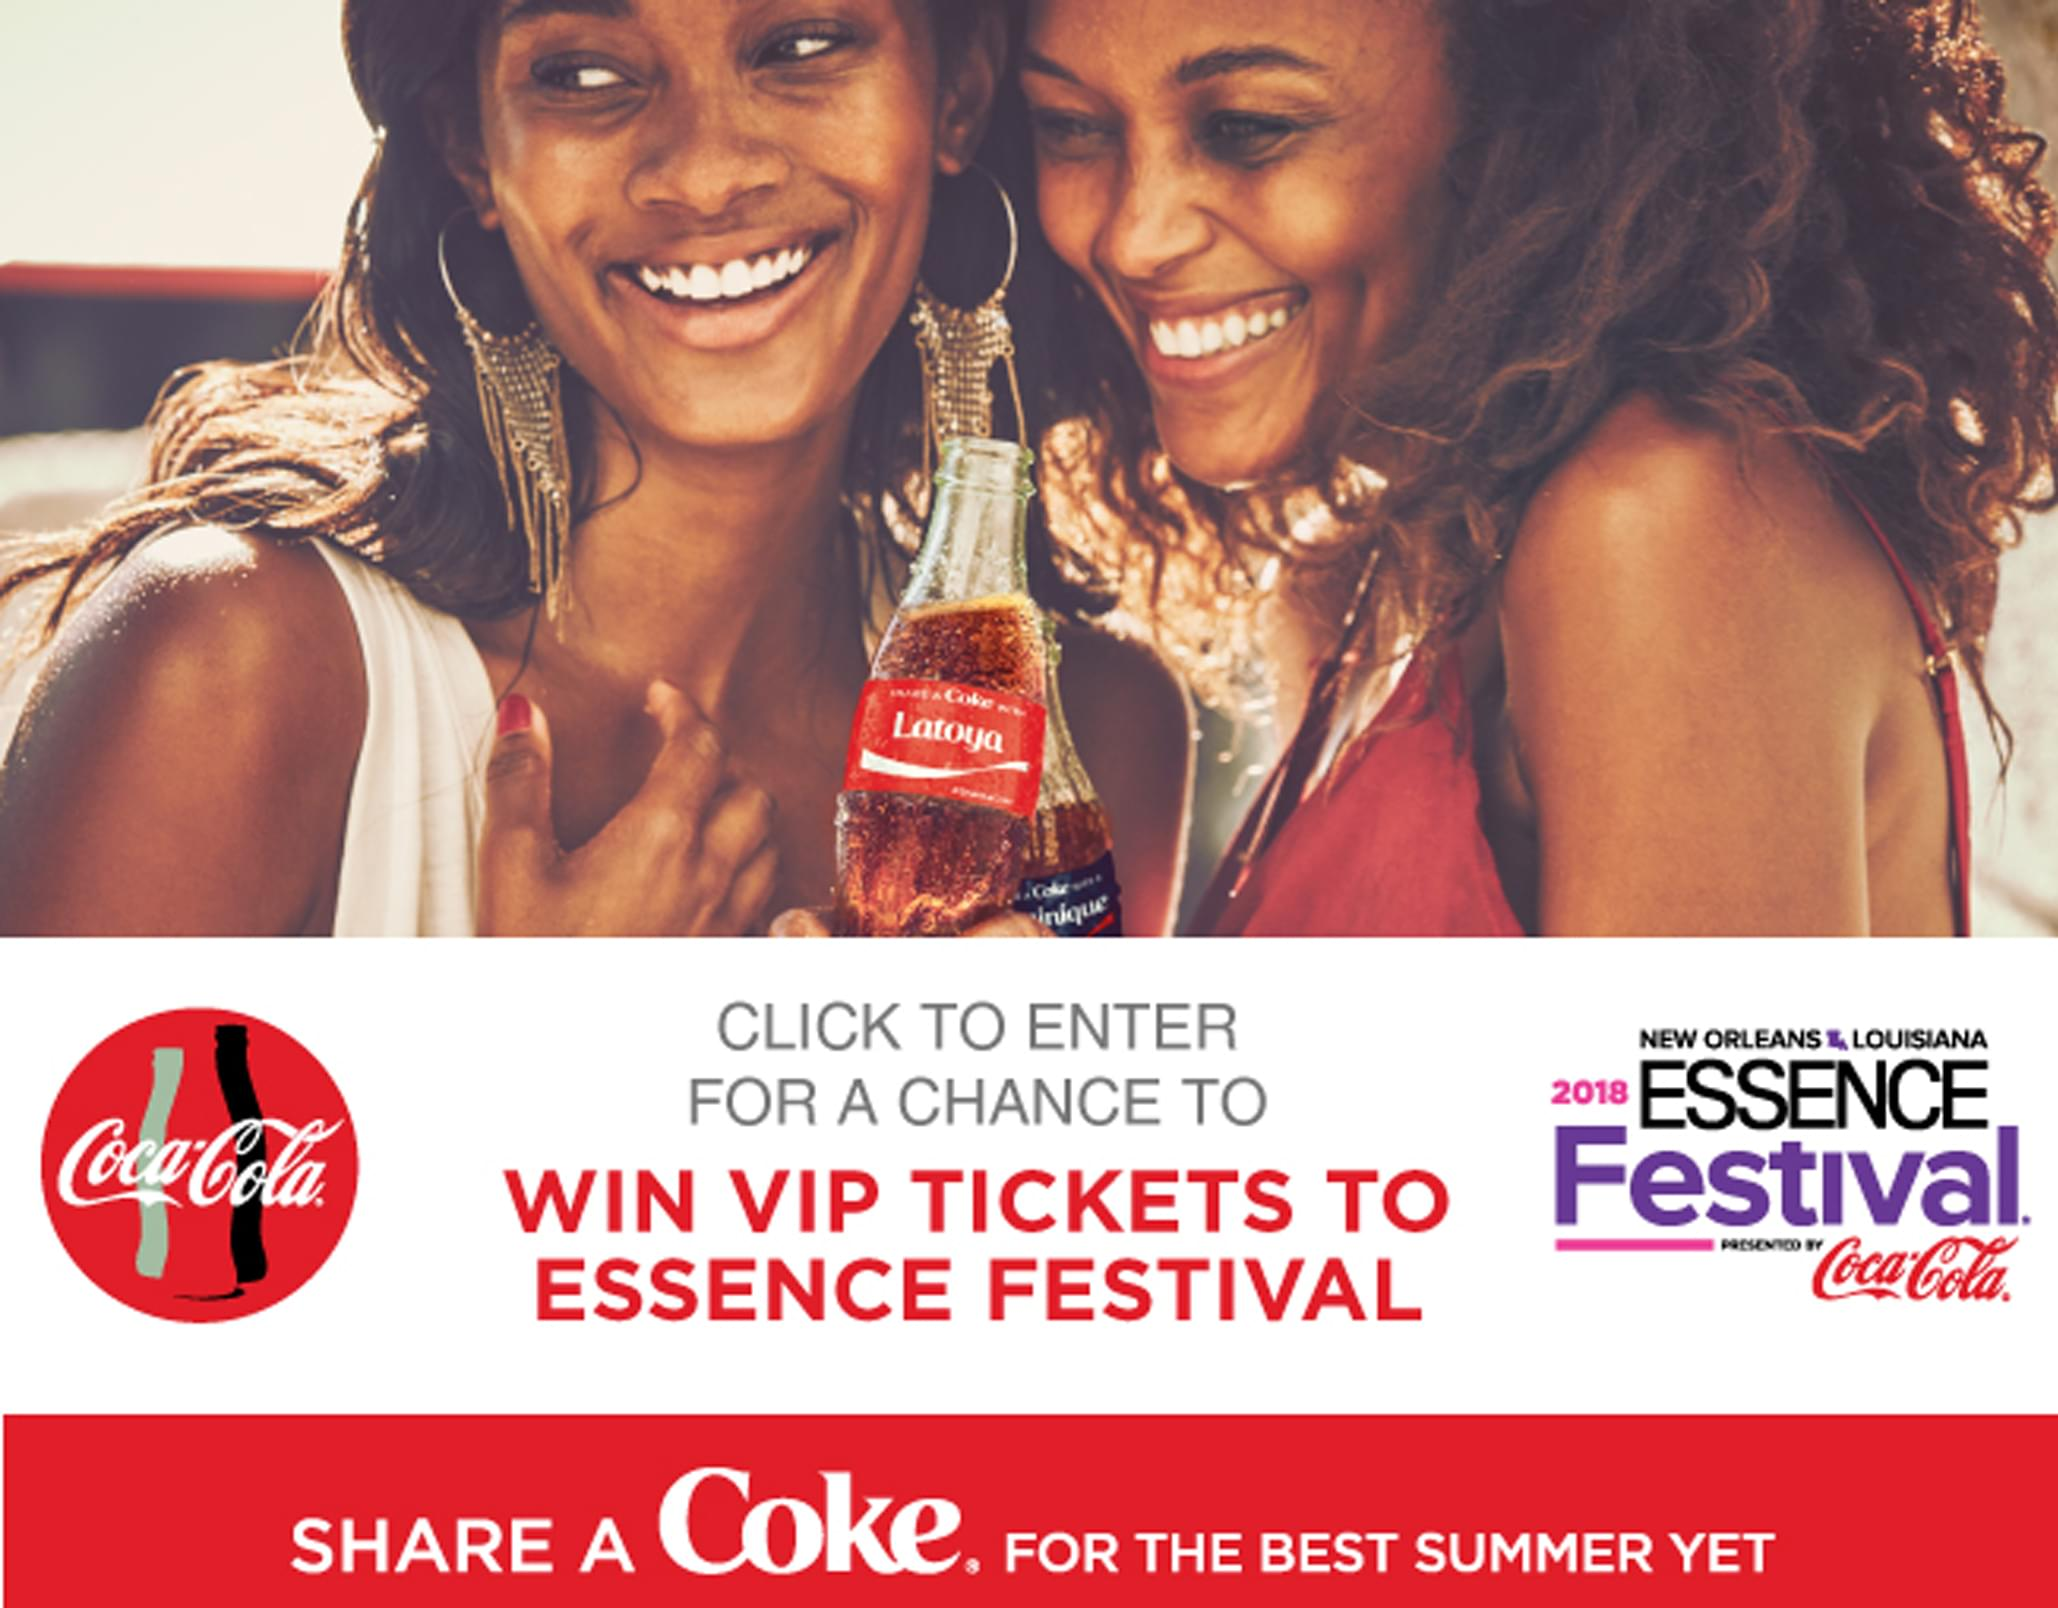 Picture Me Sharing a Coke- Essence Fest 2018